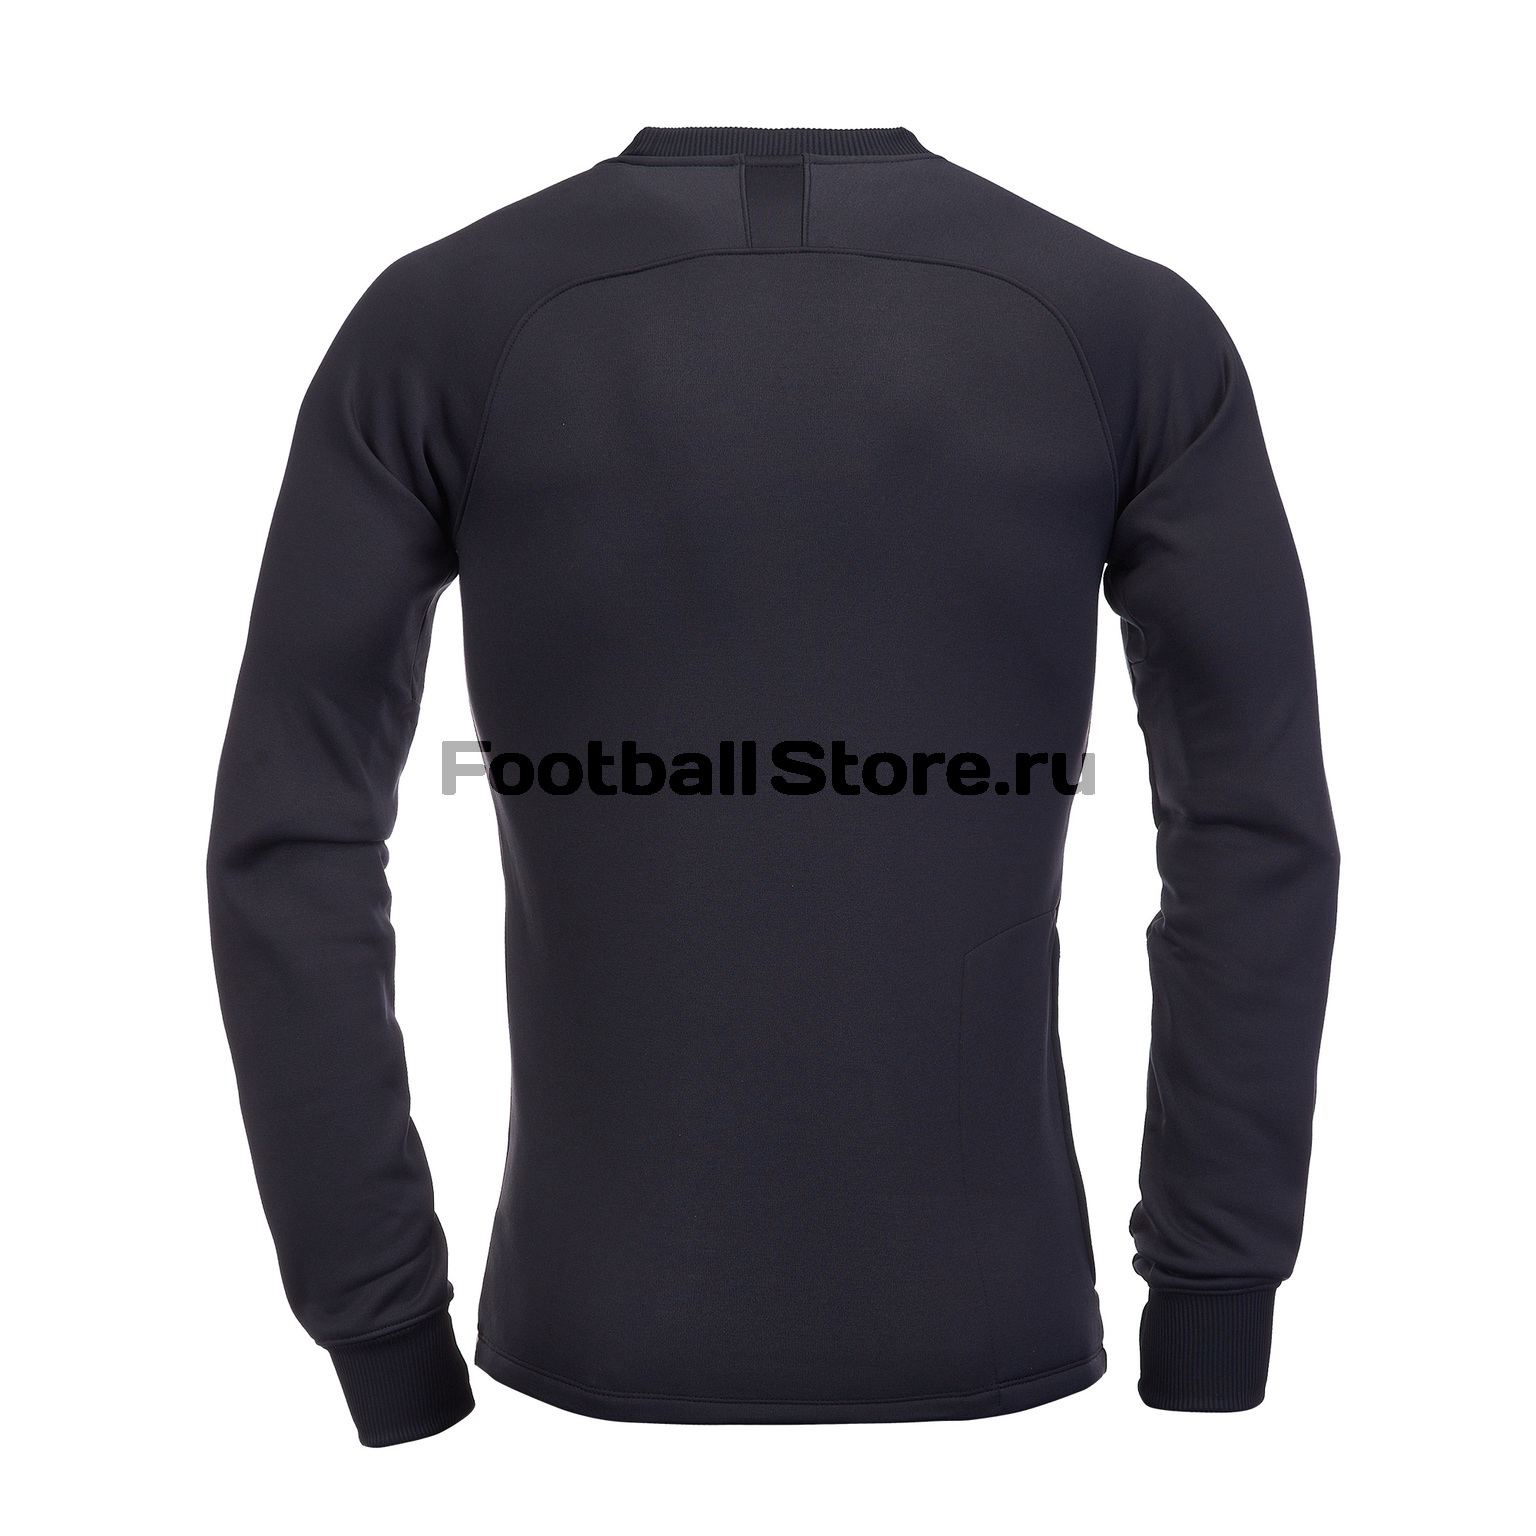 Свитер Nike Therma Academy Crew Top AO9189-010